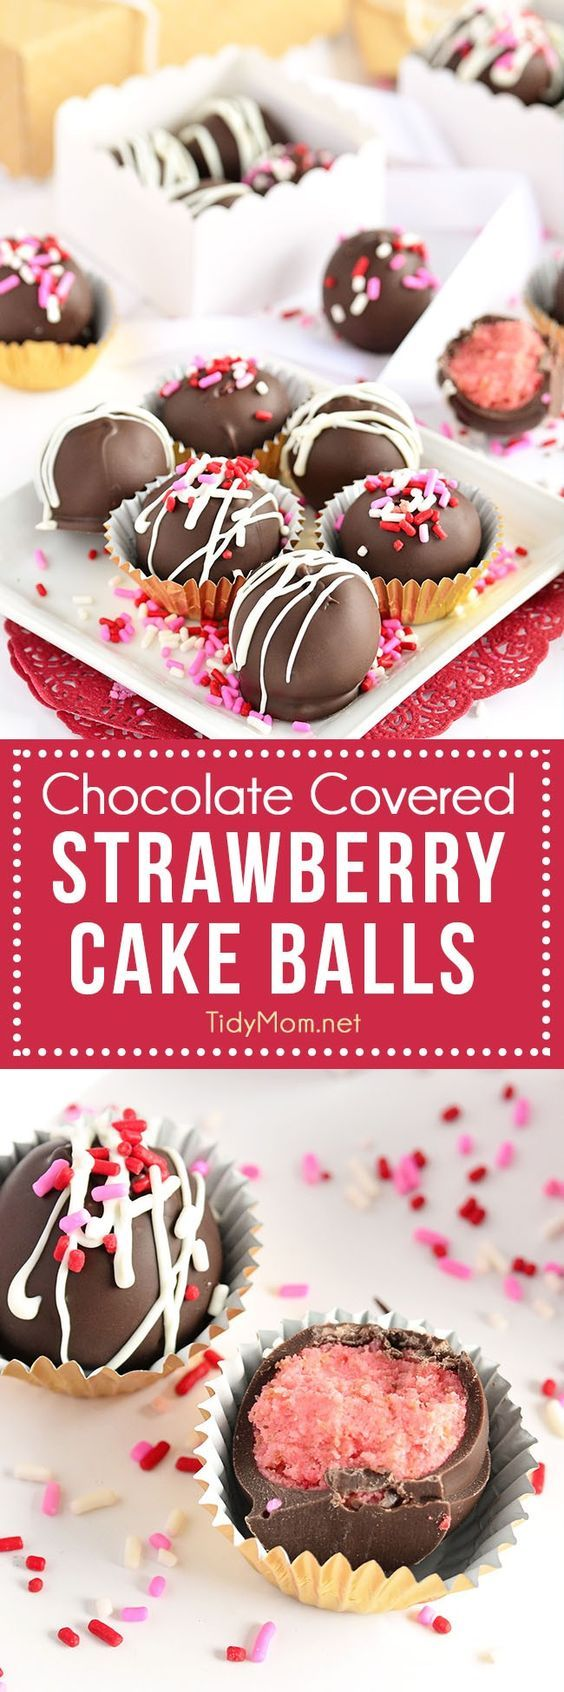 Chocolate Balls Cake Decoration : 1000+ ideas about Strawberry Cake Decorations on Pinterest ...